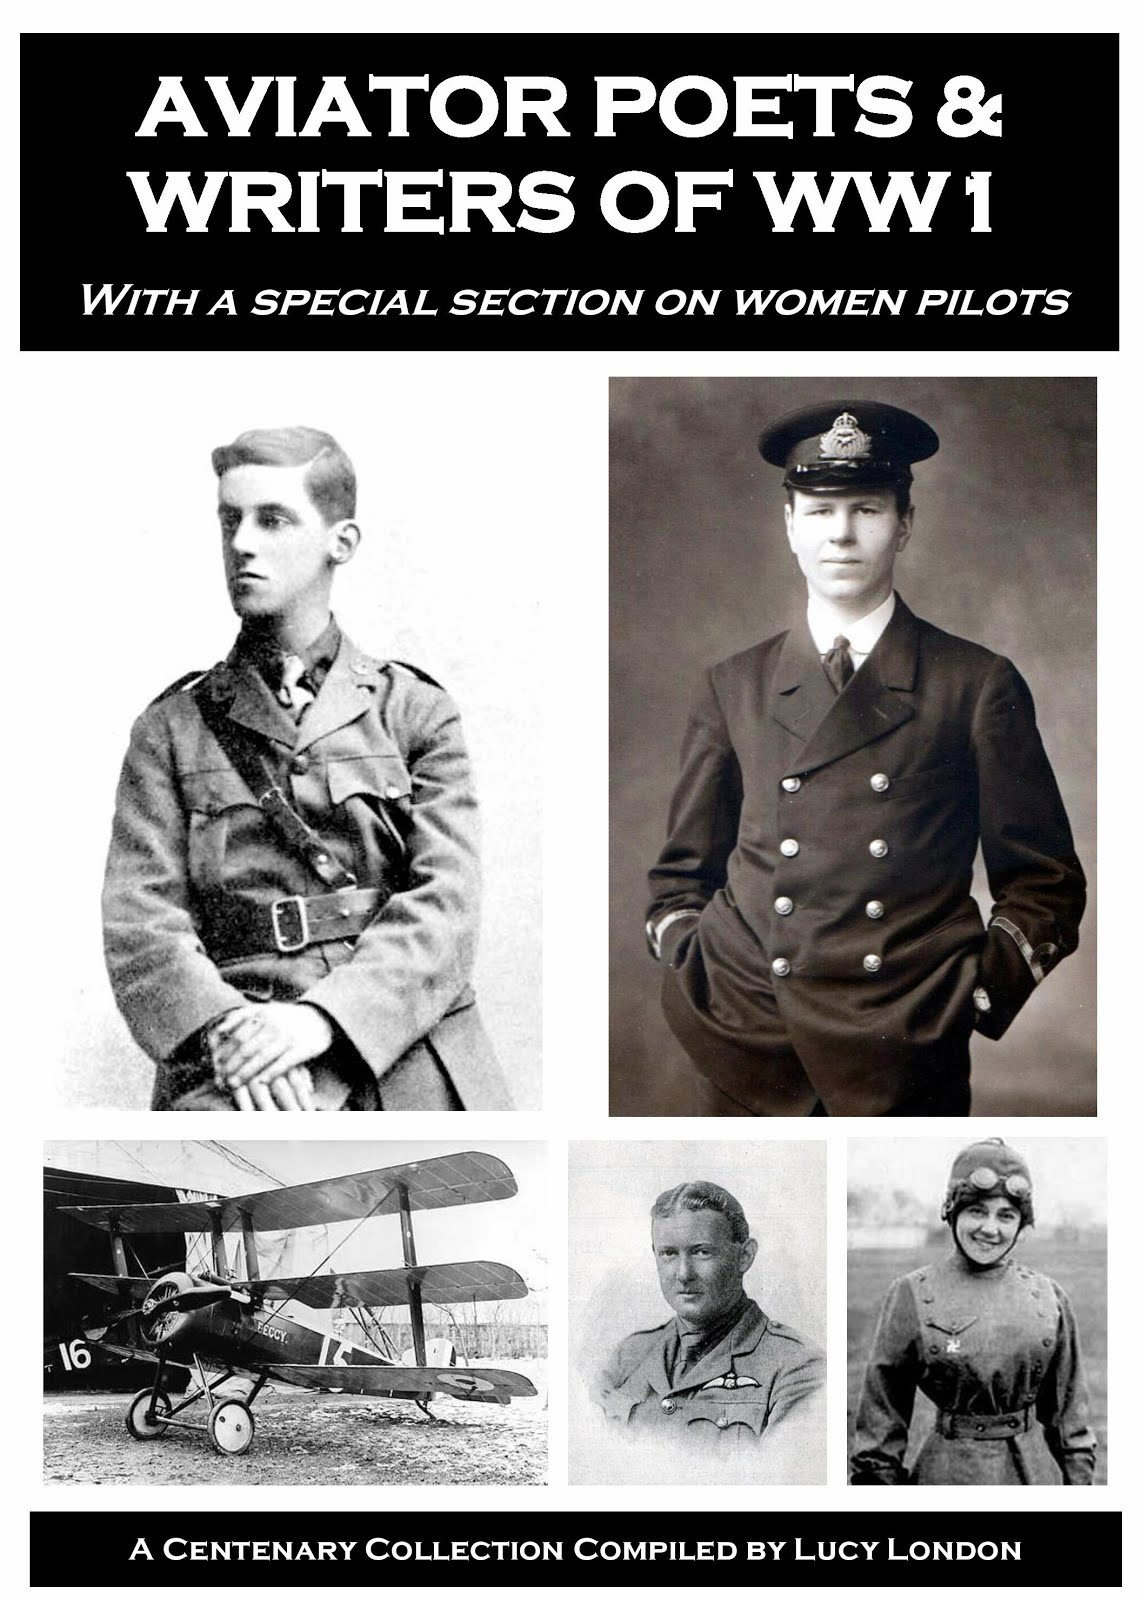 Aviator Poets & Writers of WW1